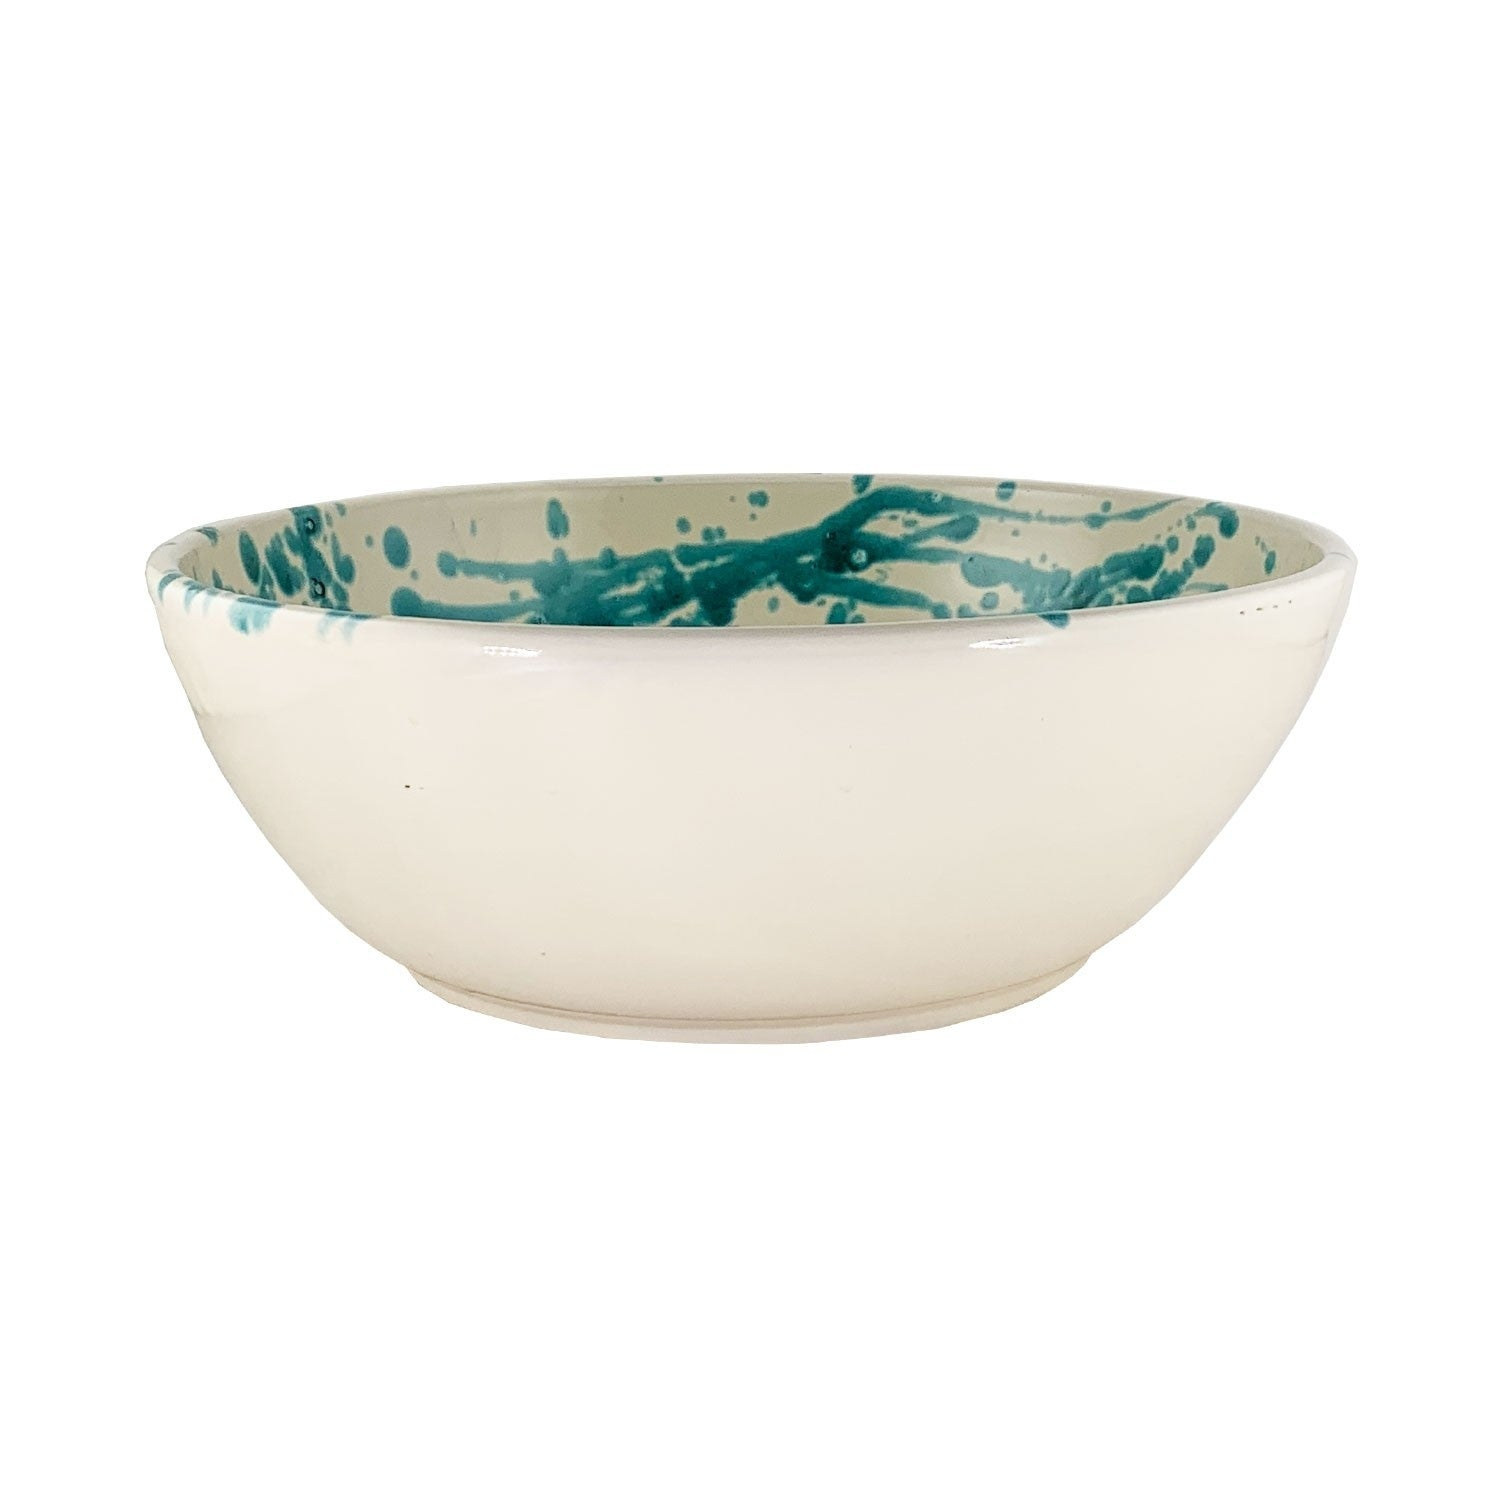 Splatterware Large Serving Bowl - Alimini Blue